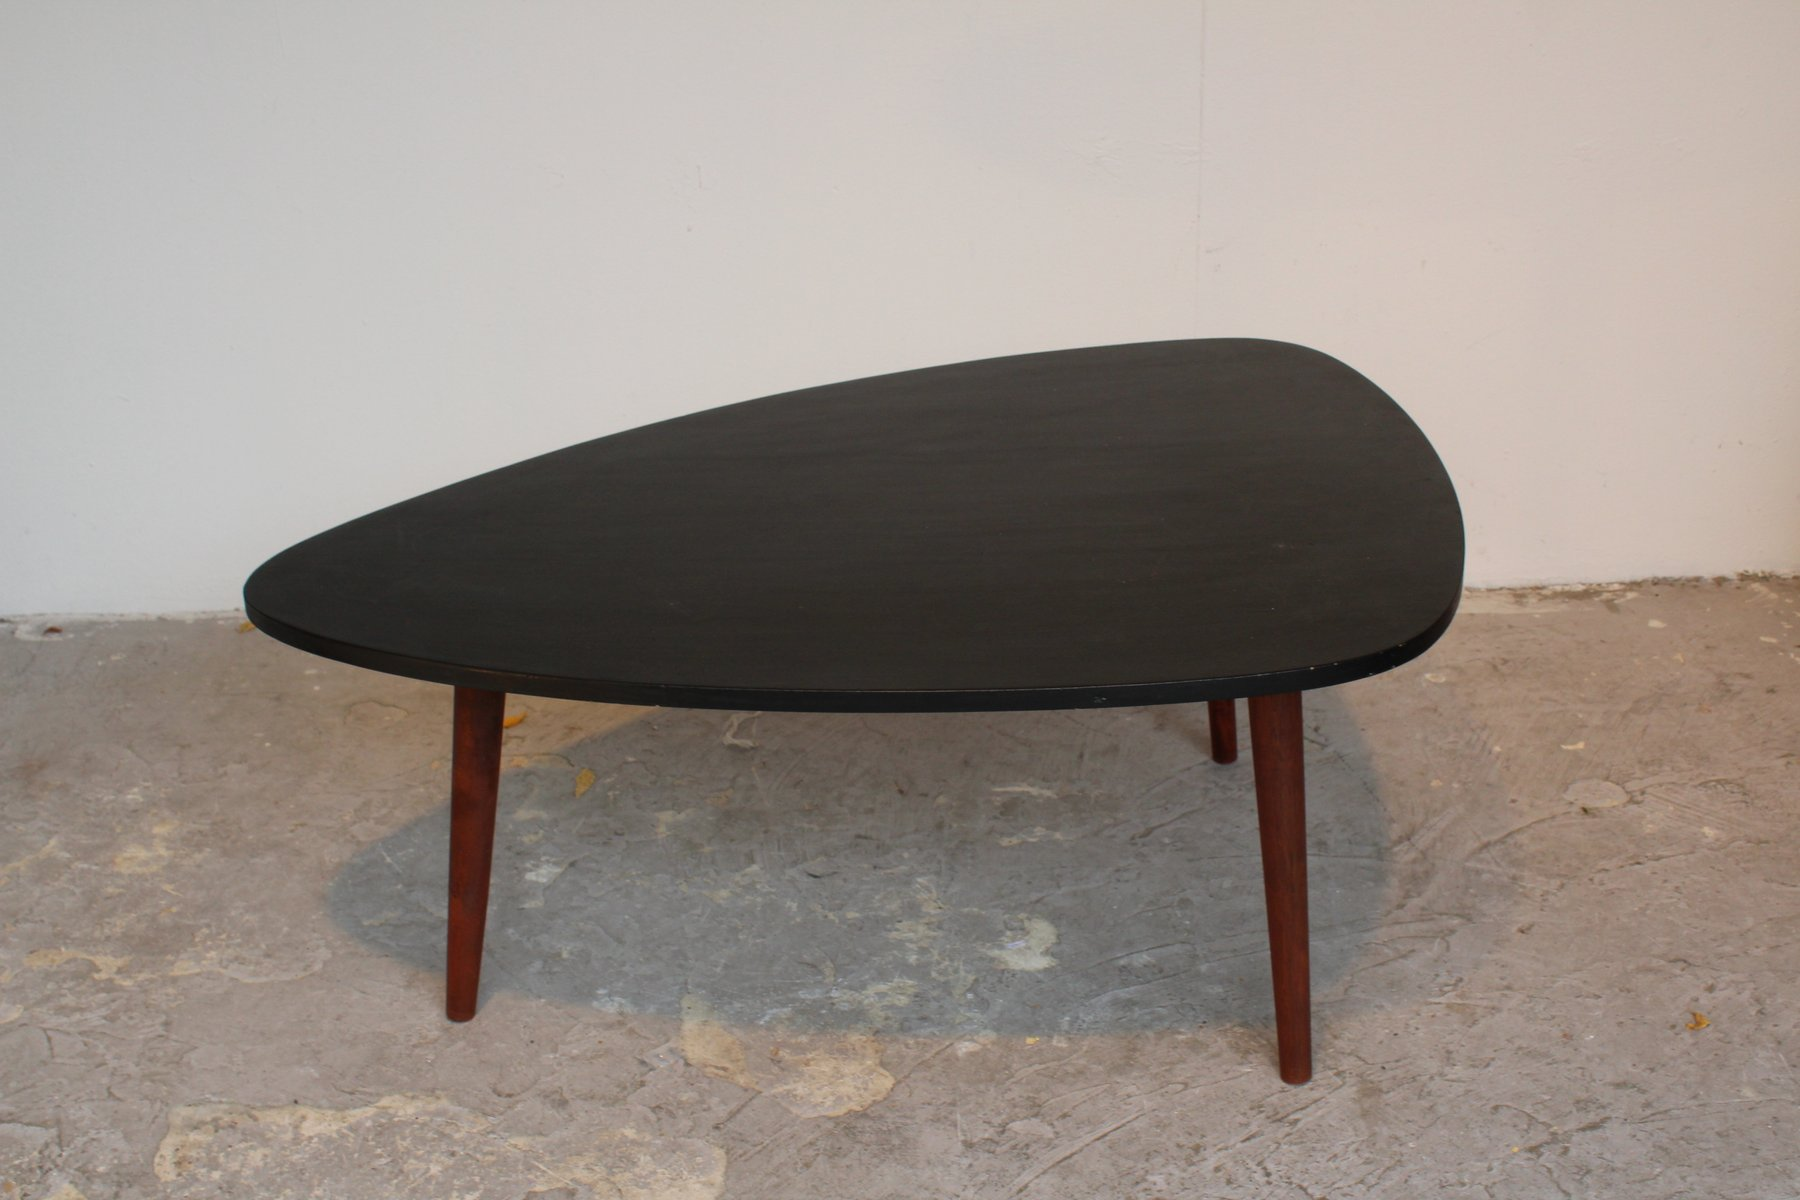 Vintage Tripod Coffee Table In Black Lacquered Wood For Sale At Pamono